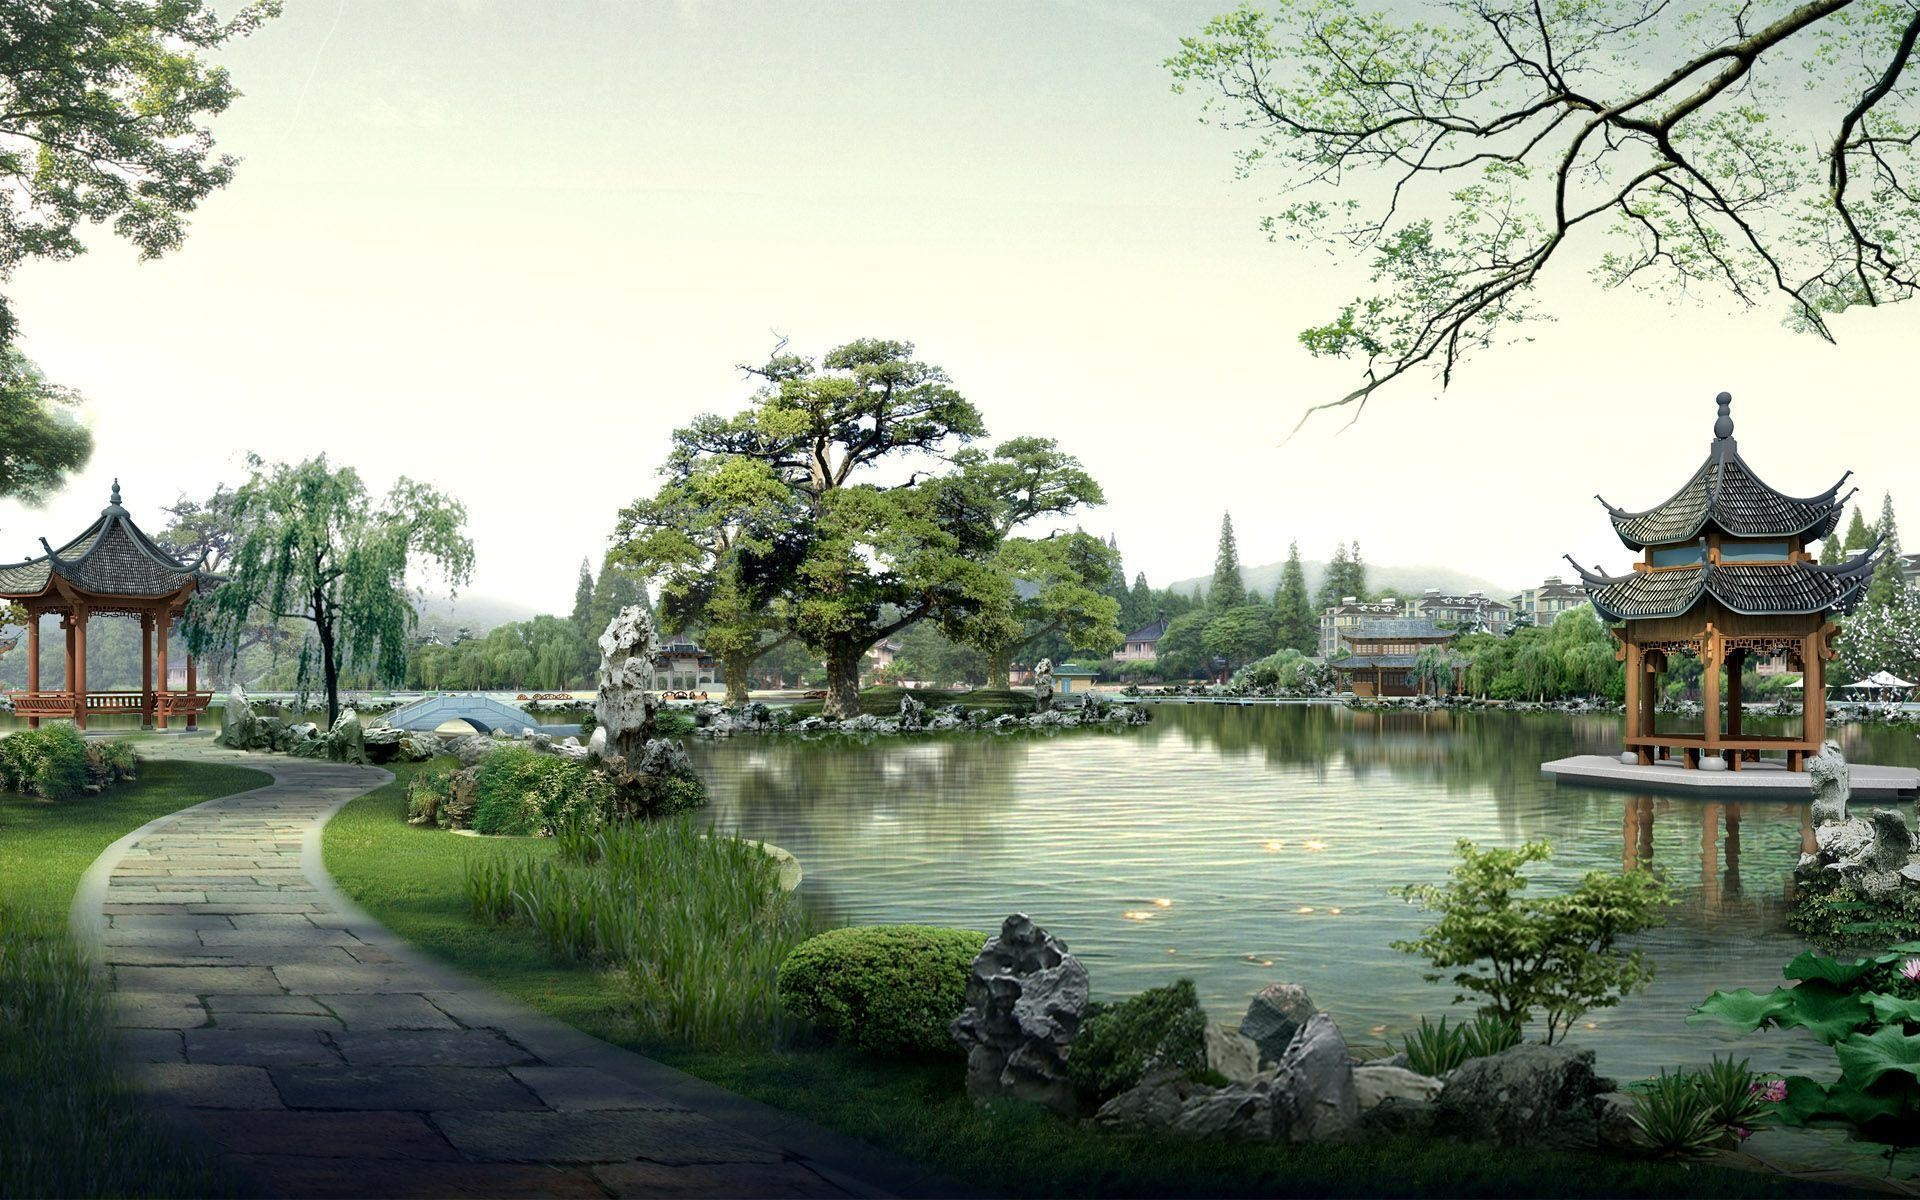 1920x1200 Samurai Images Japanese Landscape HD Wallpaper And Background Photos